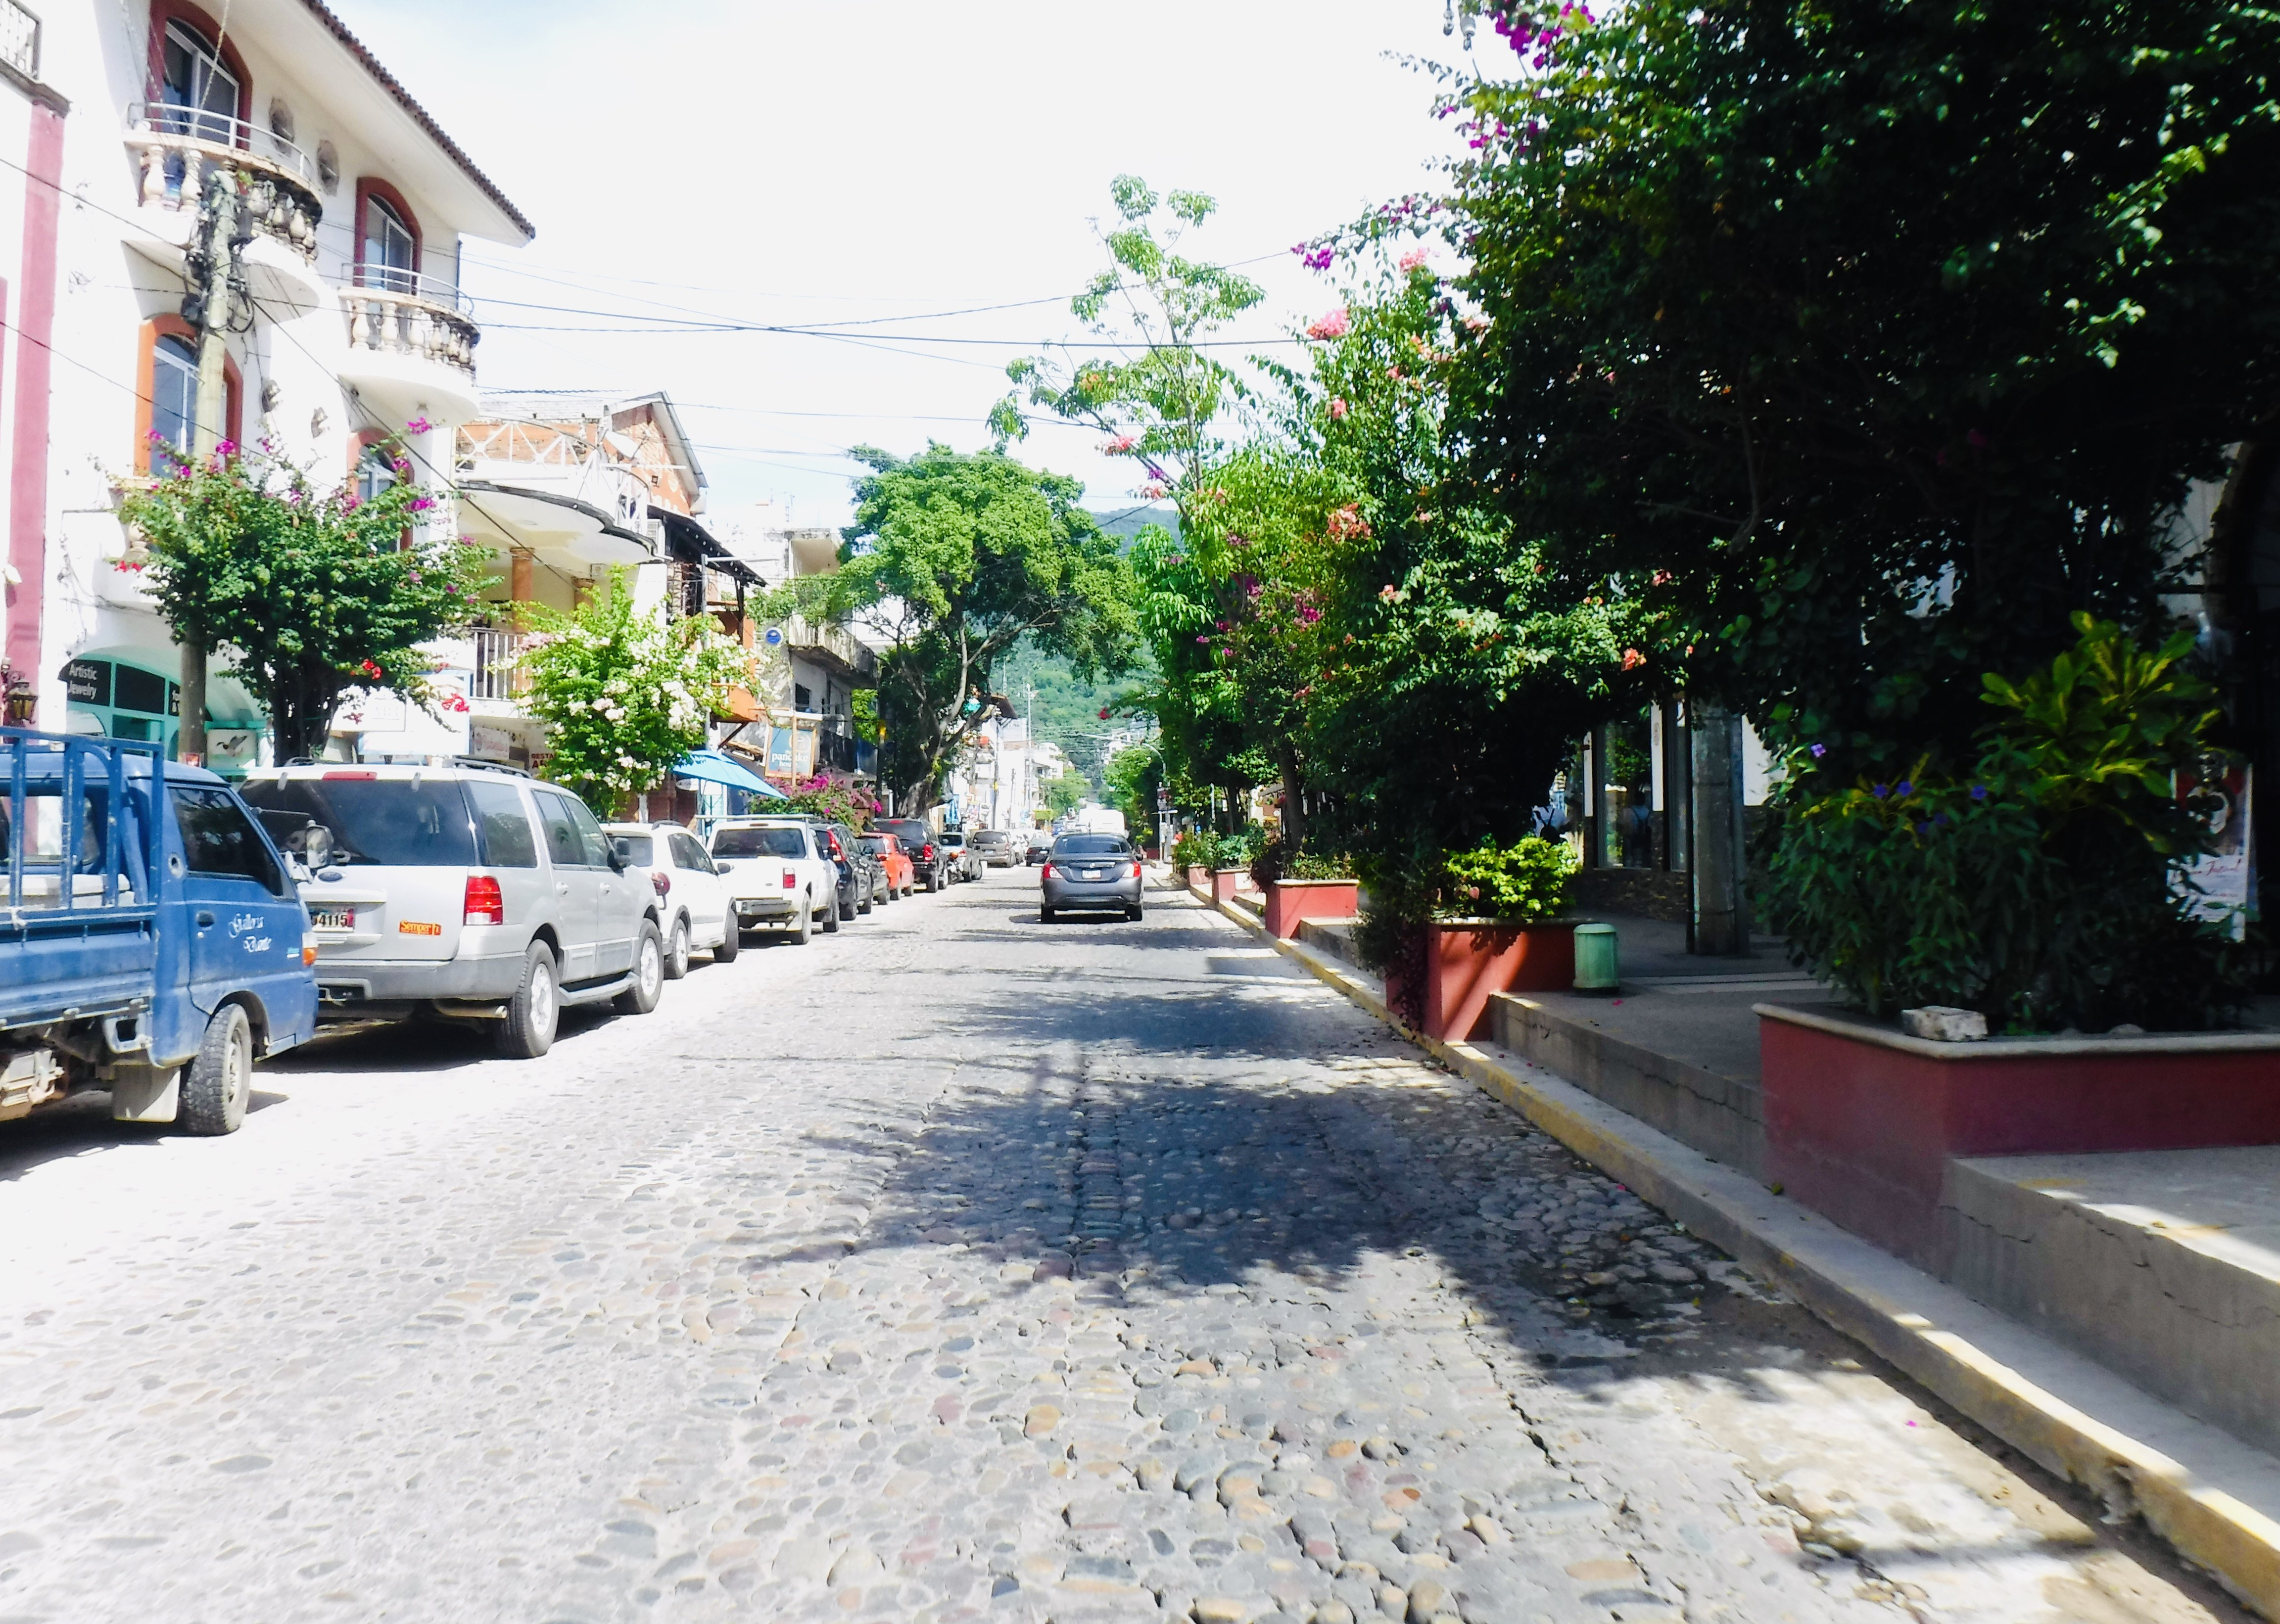 The cobble road we were driving on, with flowers and trees on the sidewalk